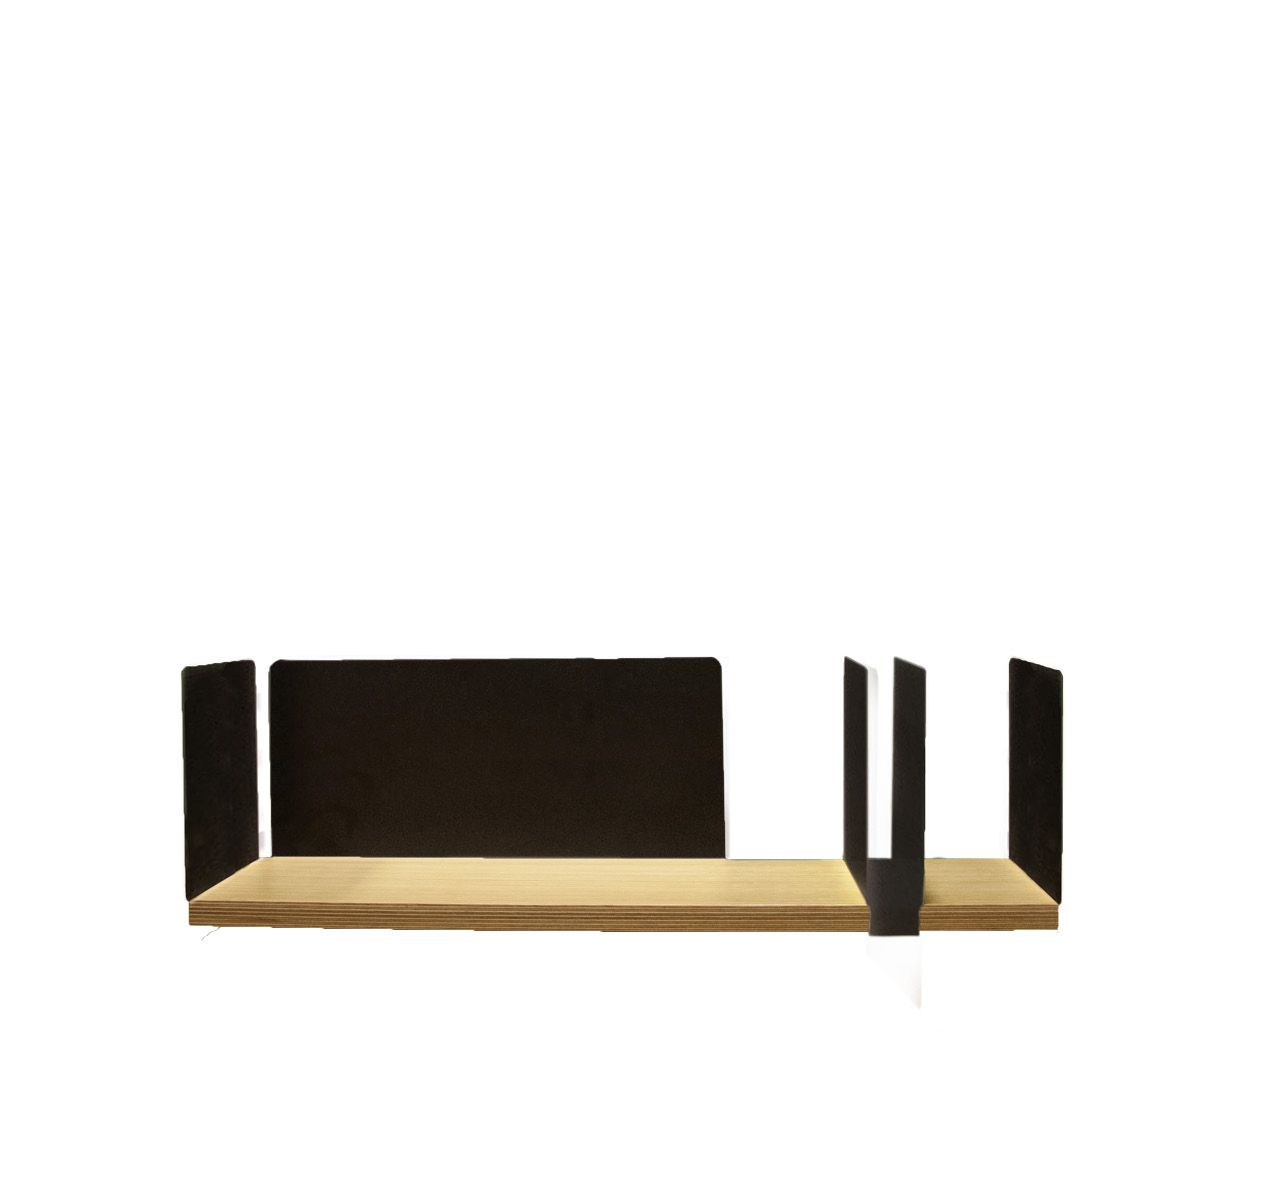 portable atelier shelf with black sliding element - фото